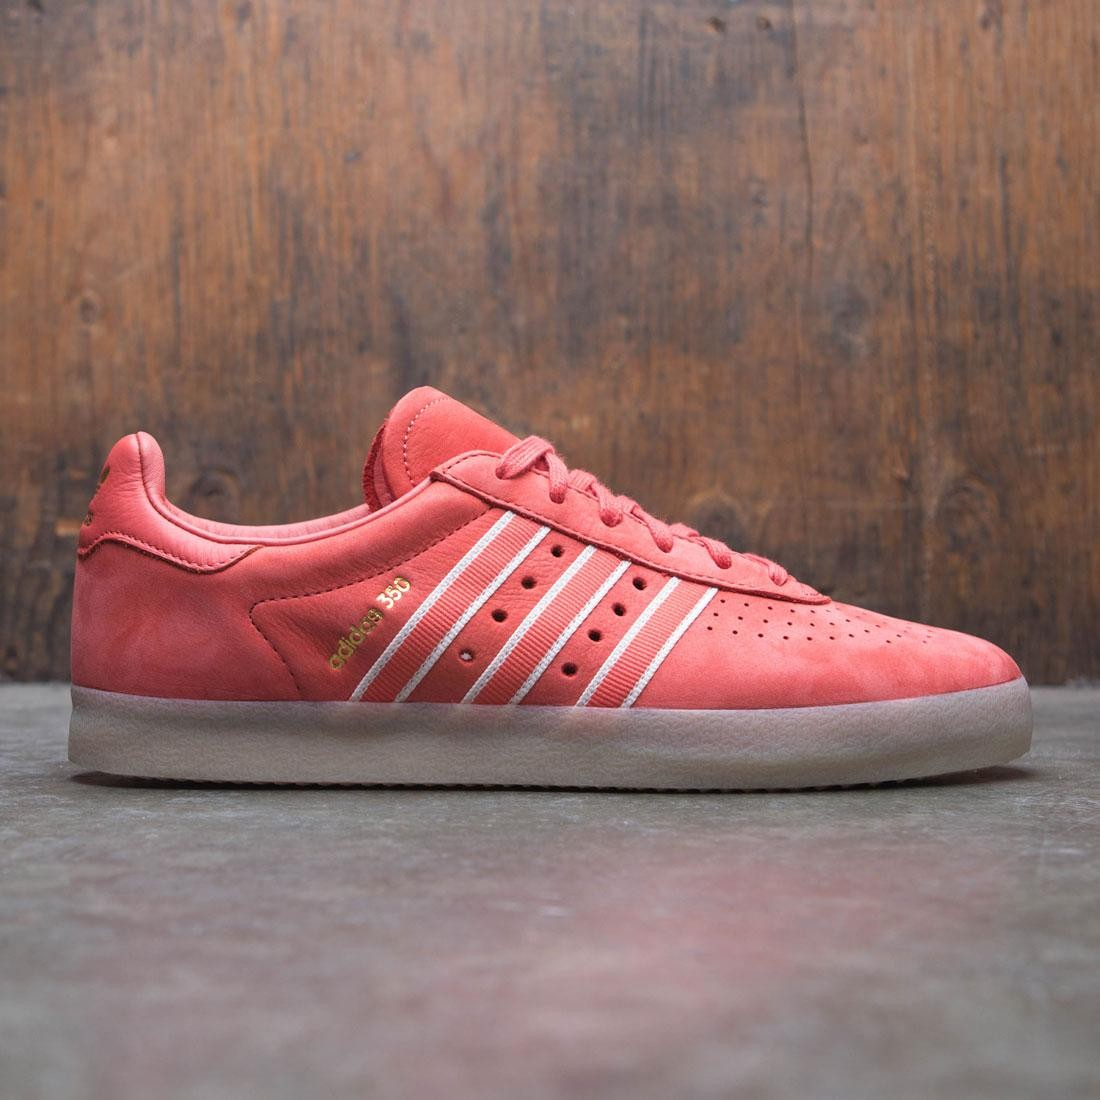 uk availability b4227 eb79a Adidas Men Oyster Holdings Adidas 350 red trace scarlet chalk white  metallic gold